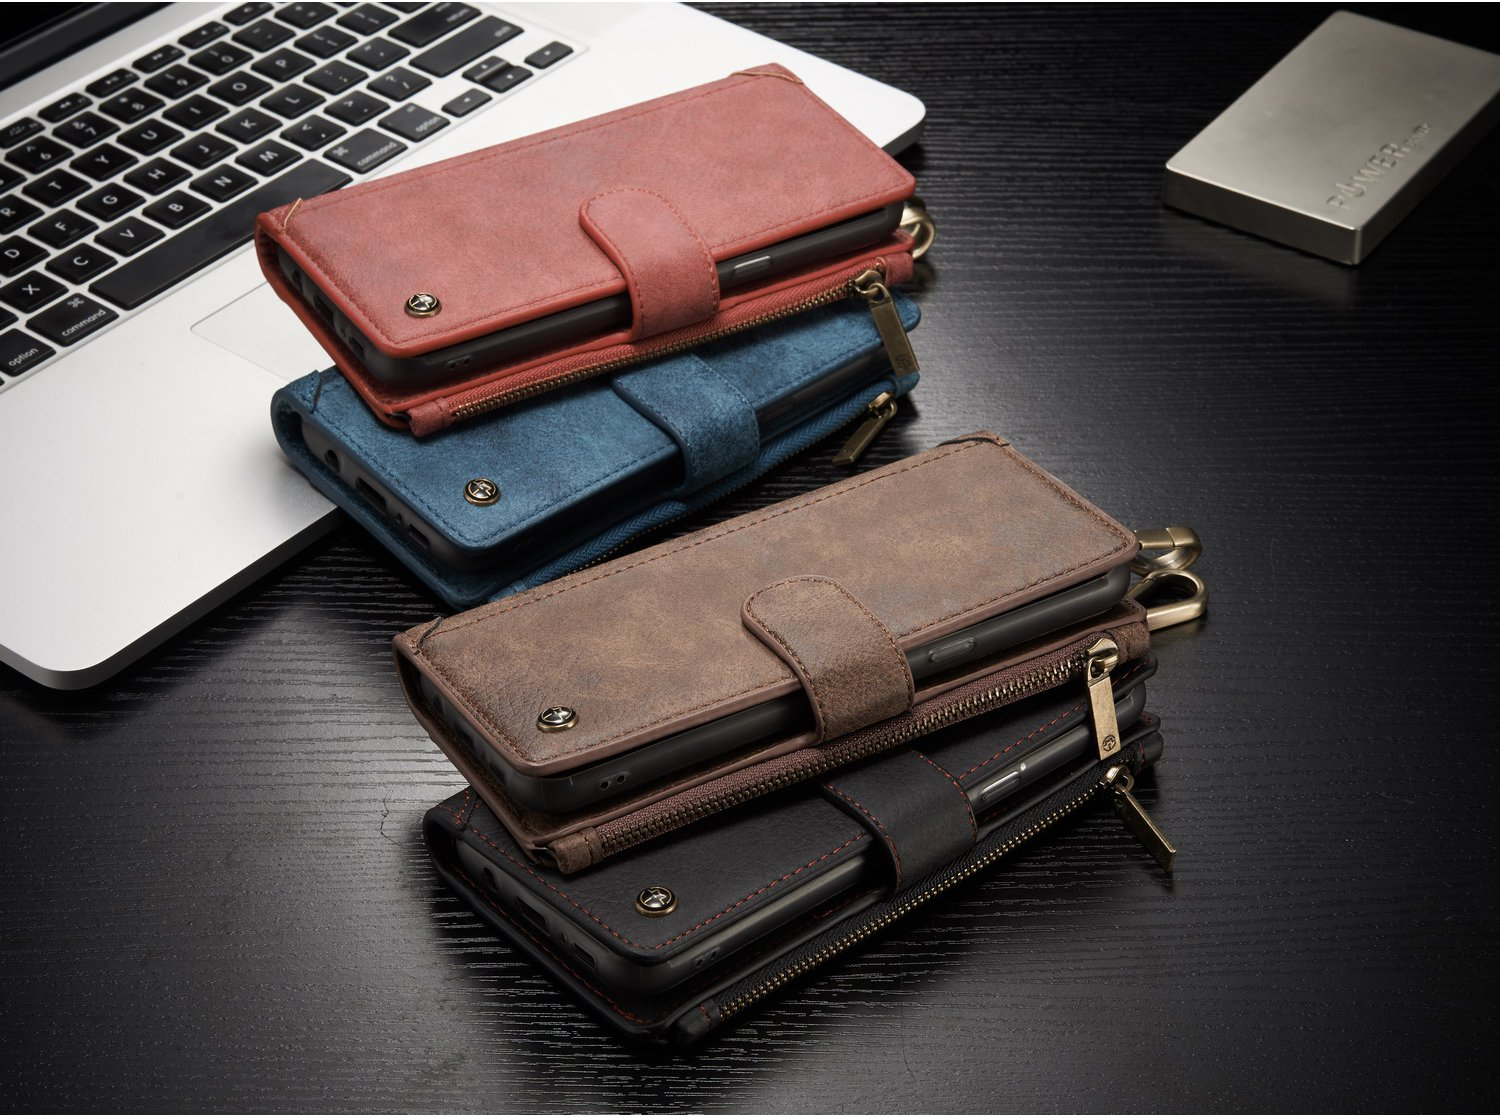 CaseMe PU Leather Multifunctional Detachable Zipper Wallet Hook Case For Samsung Galaxy S8 Plus